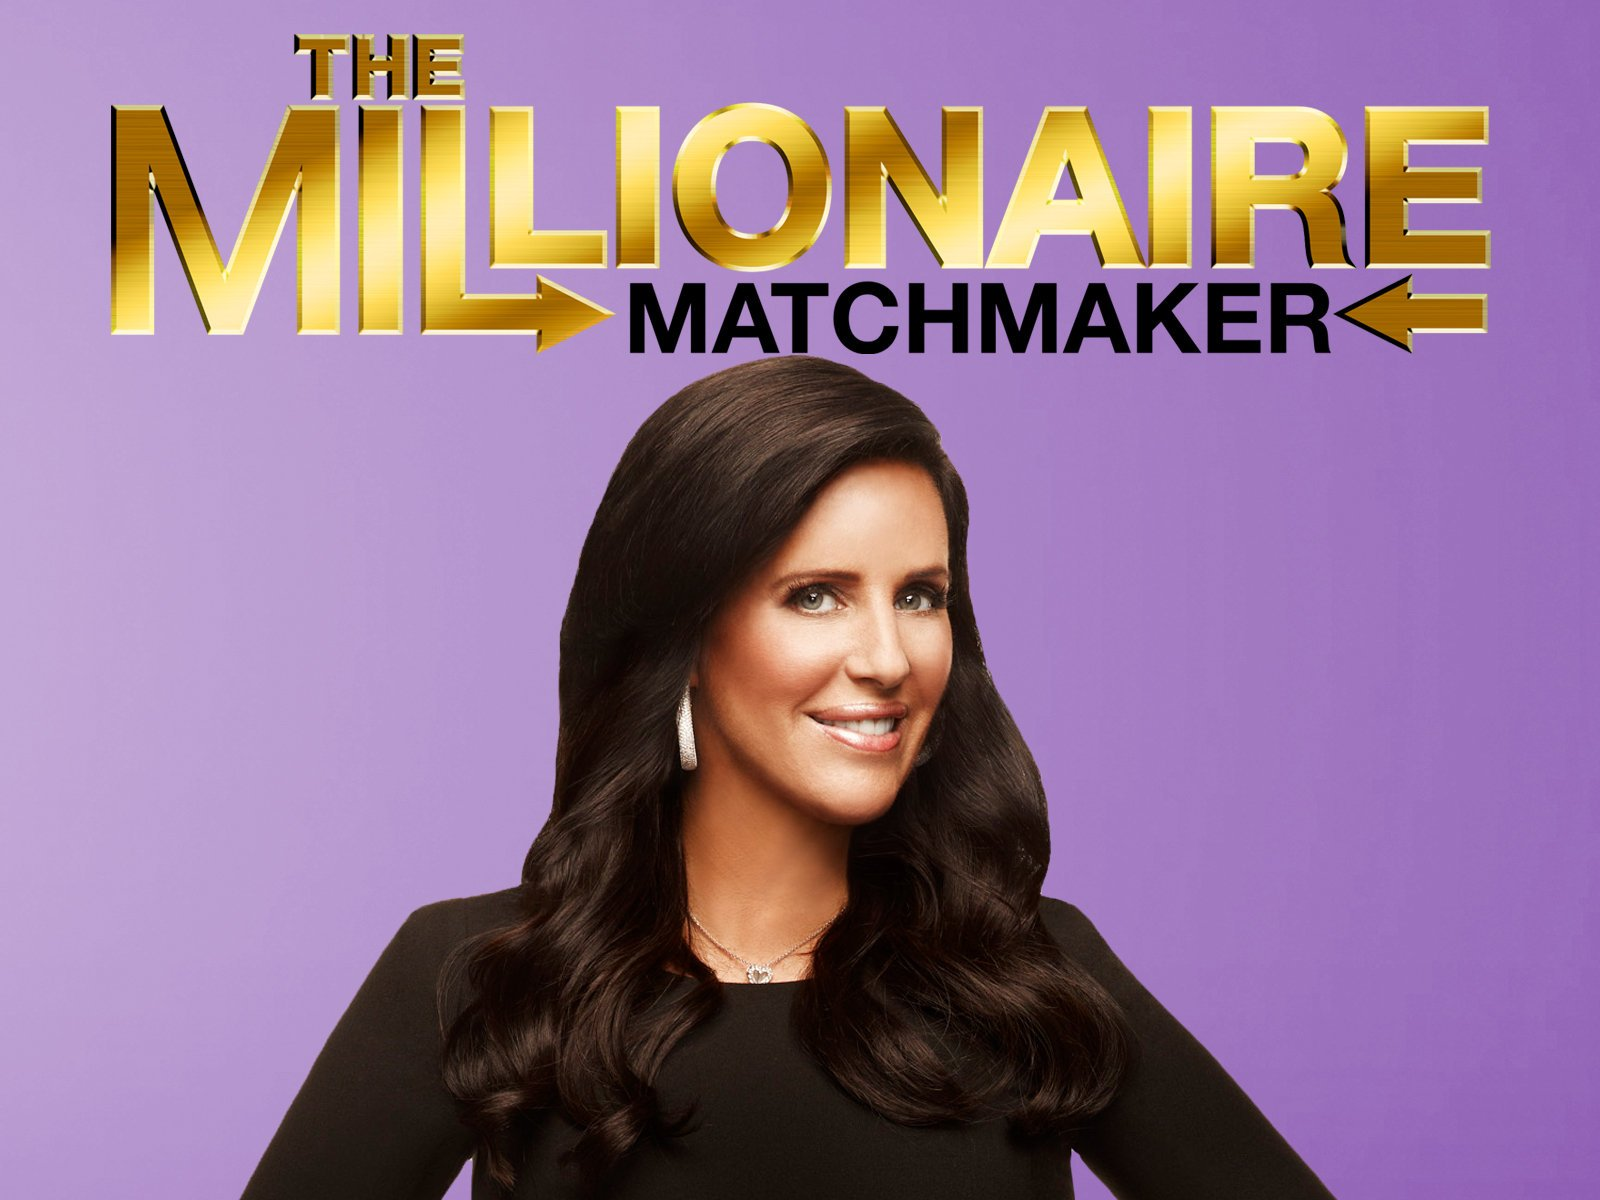 How to get on millionaire matchmaker